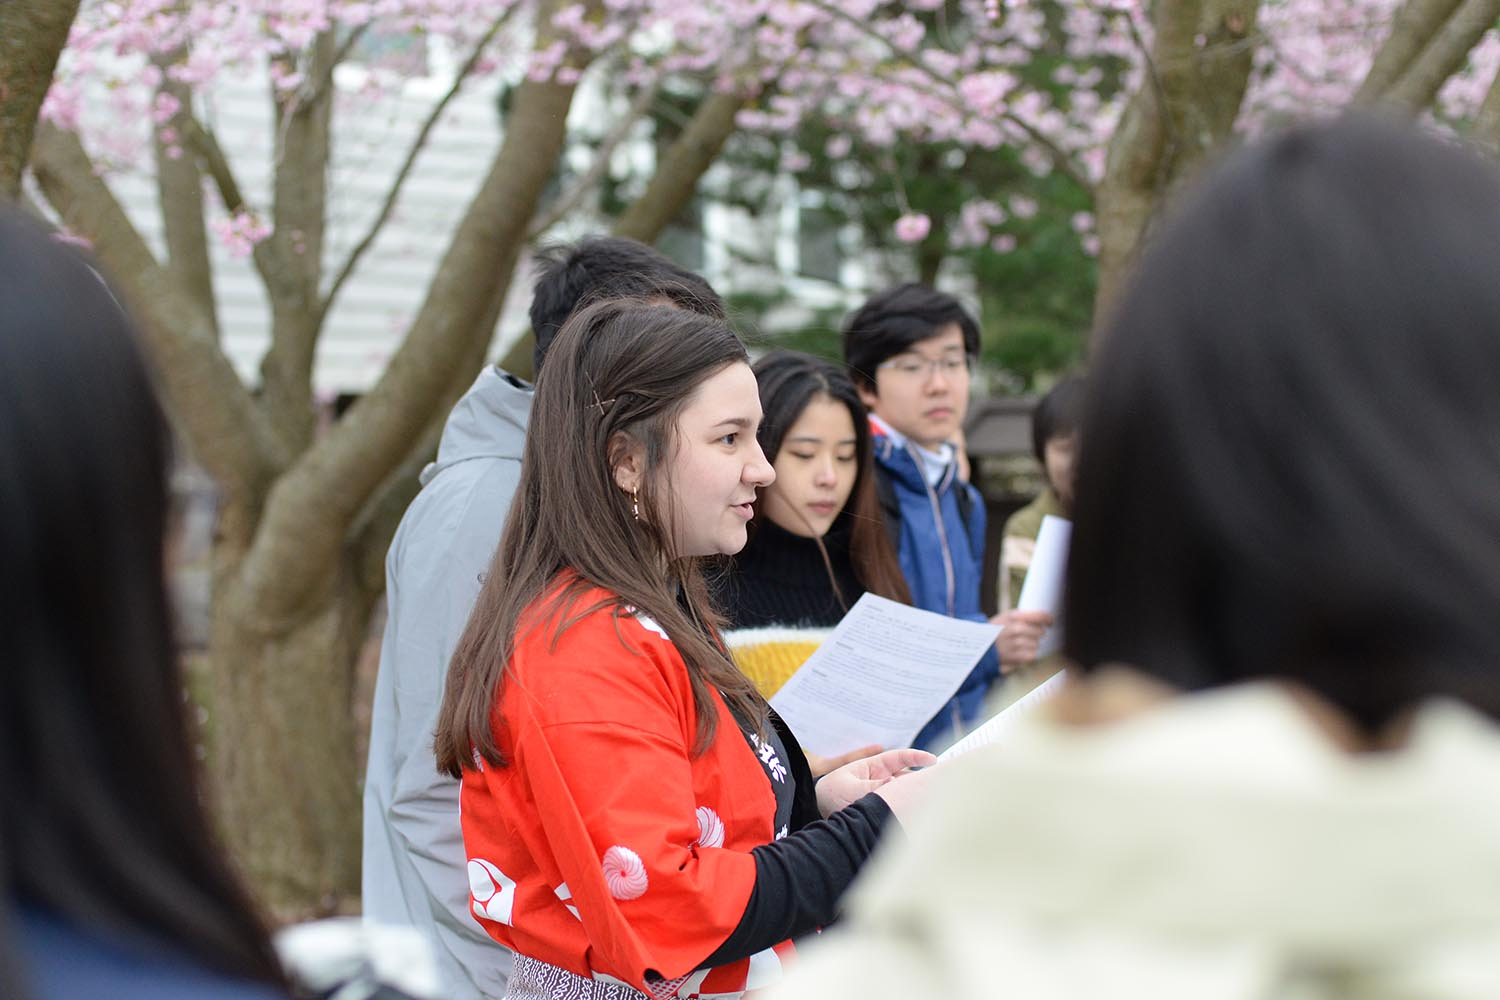 Students enrolled in JAPN218 and JAPN220 courses took turns reading a story—in Japanese and English—about the CEAS's cherry trees.